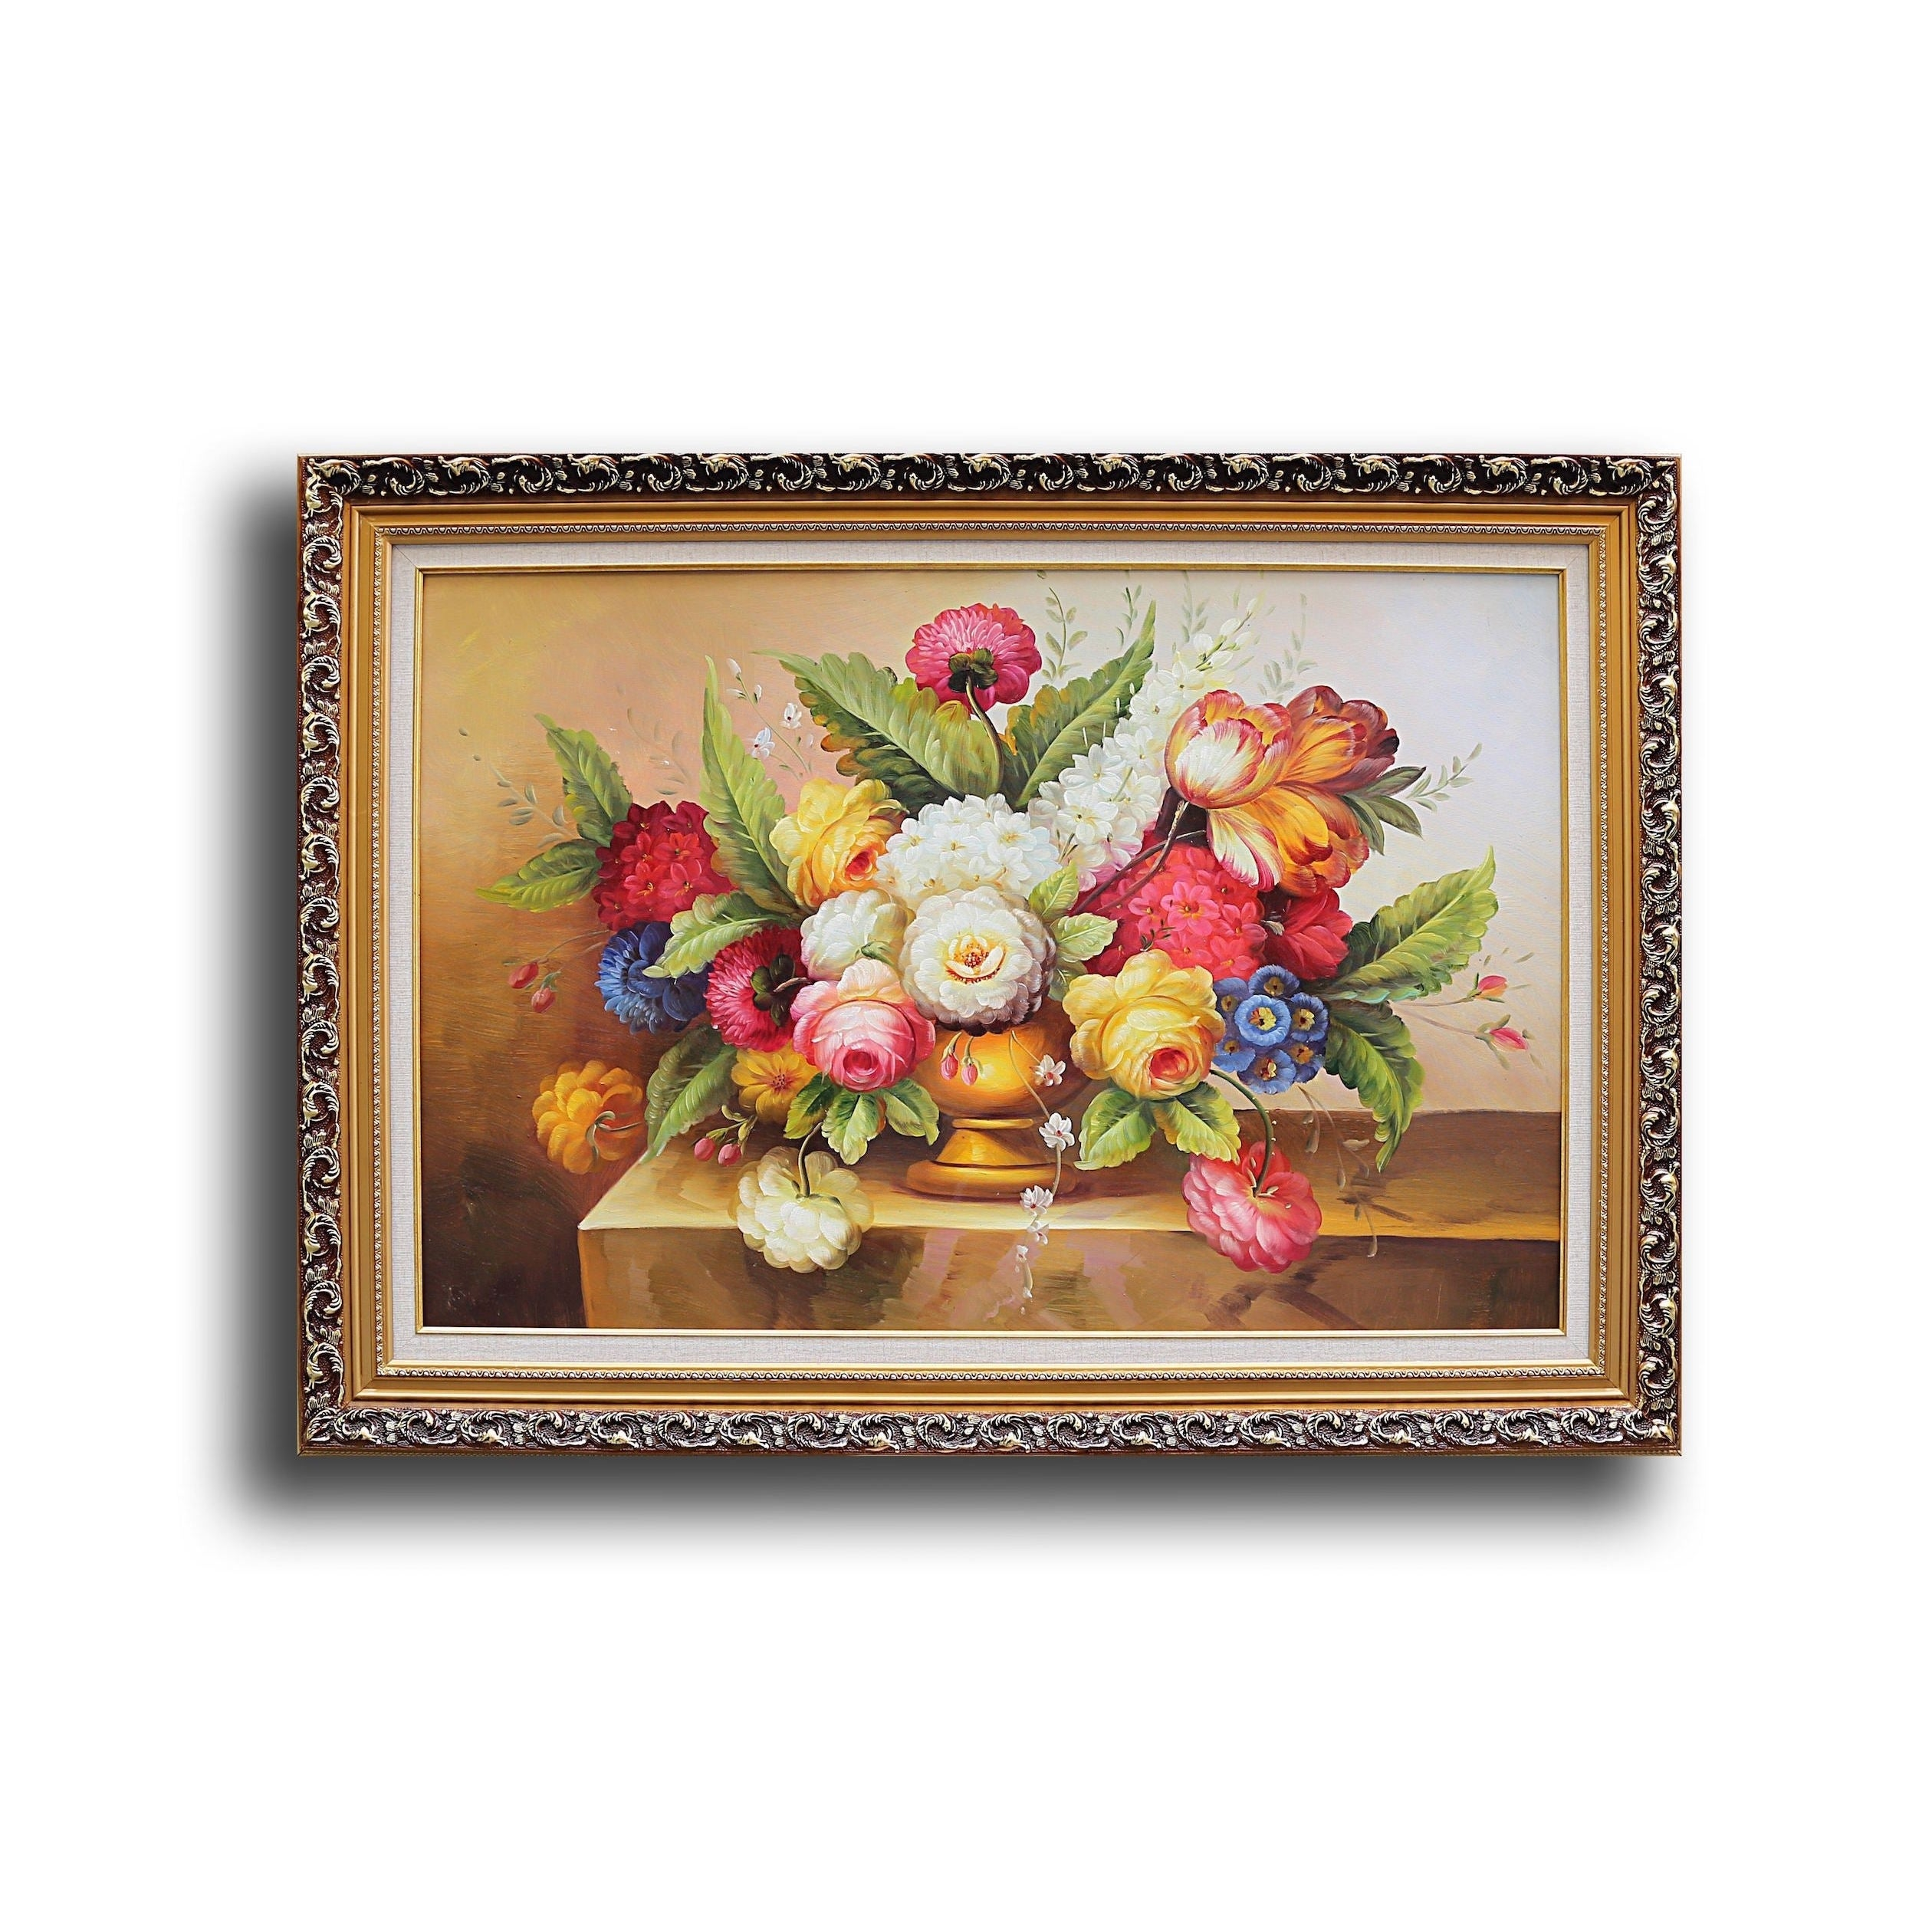 First Lighting Vase with Flowers (Overall weight: 17lb Ne...